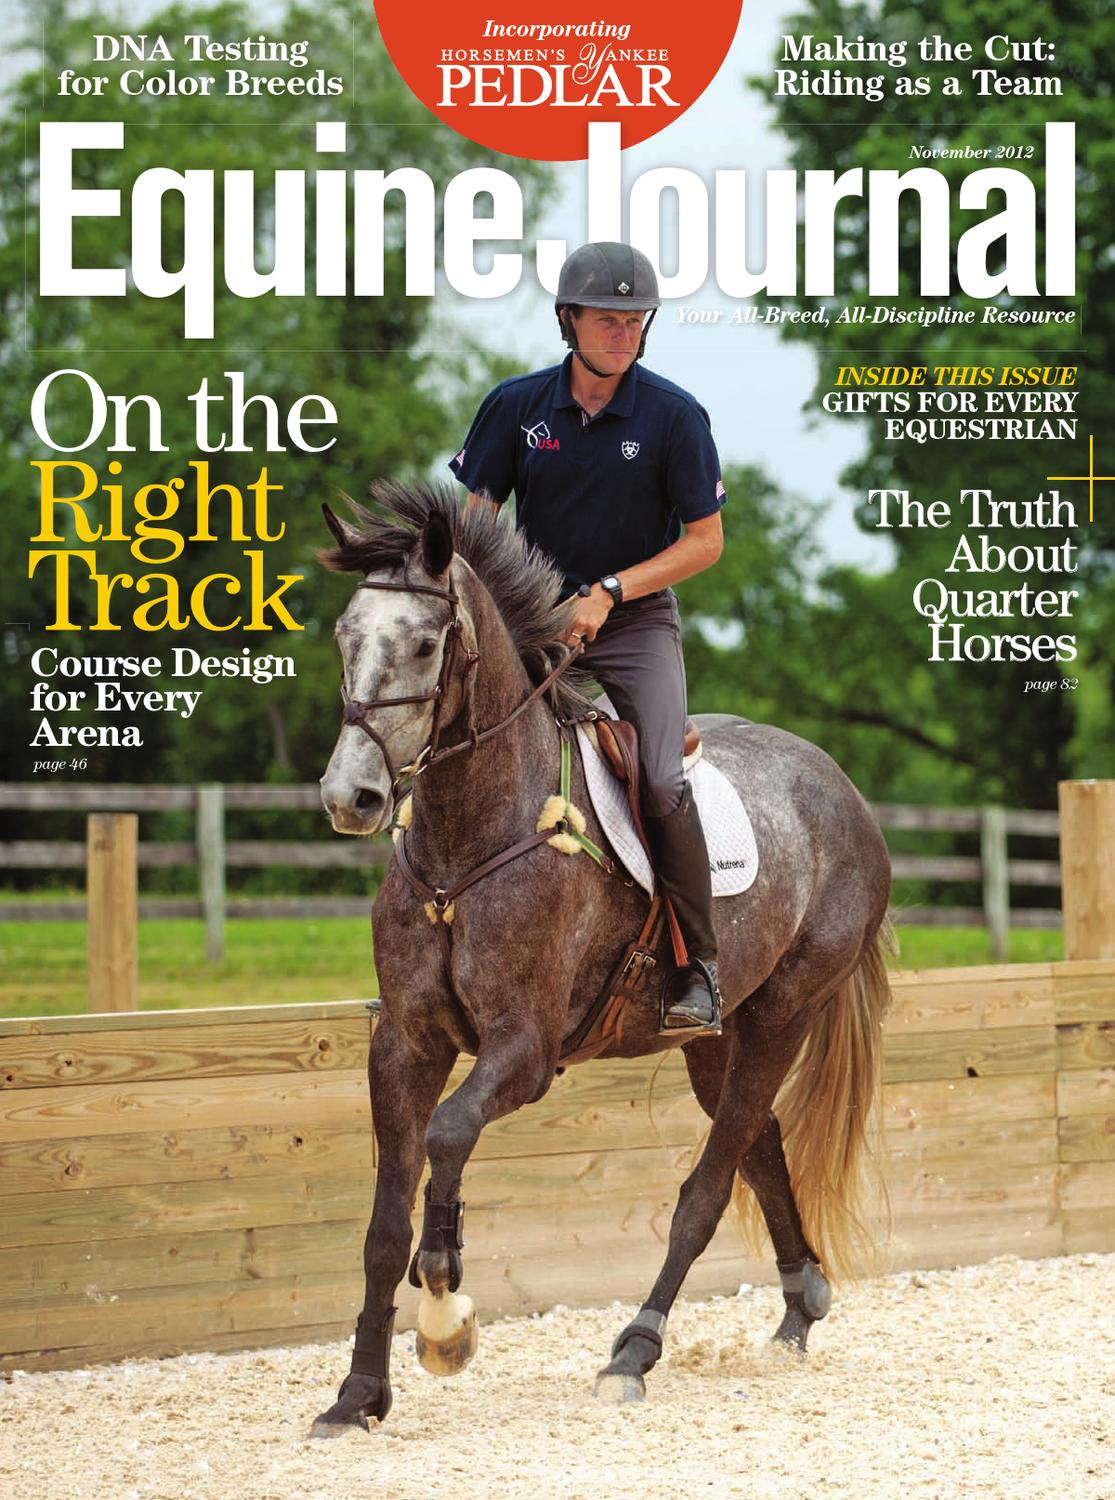 Does the national diploma in horse management have a written exam?